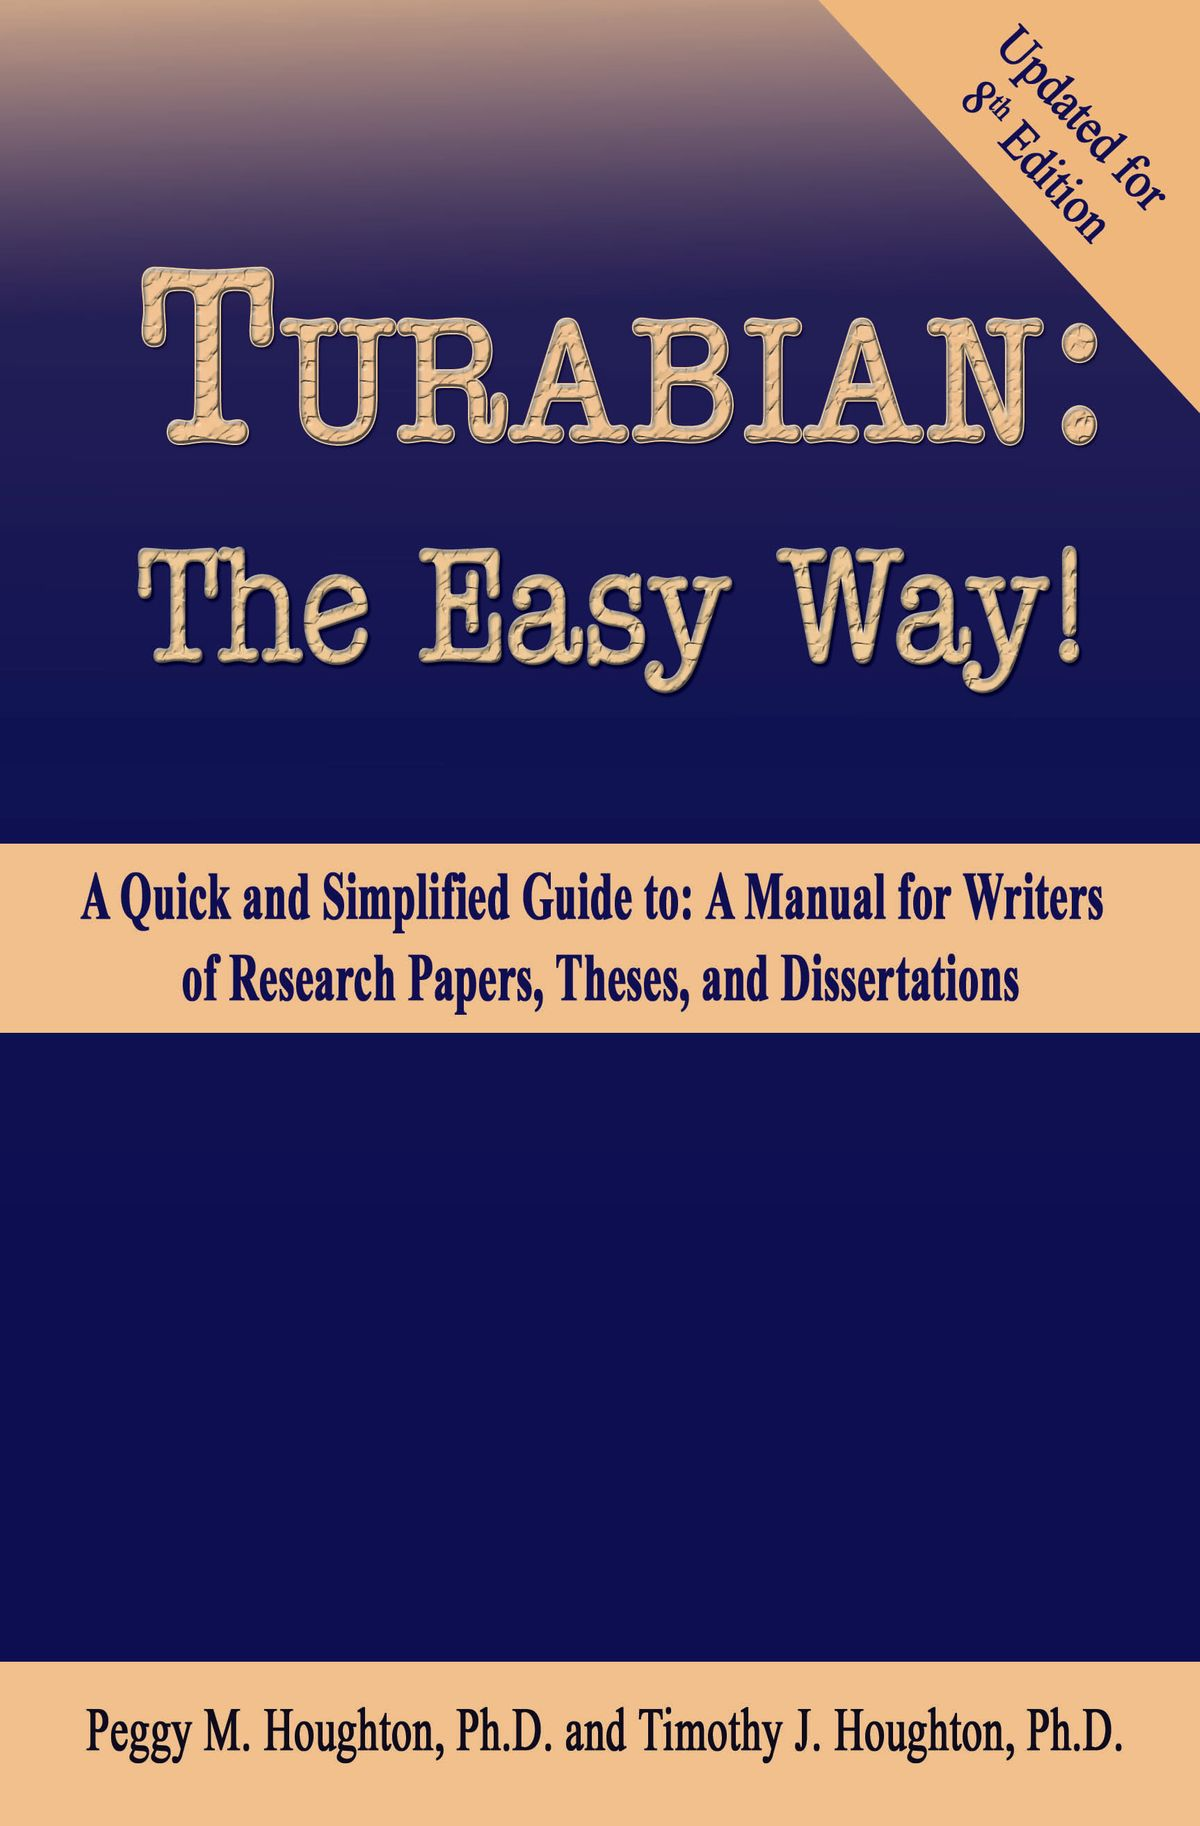 017 Turabian The Easy Way For 8th Edition Manual Writers Of Researchs Theses And Dissertations Eighth Phenomenal A Research Papers Pdf Full